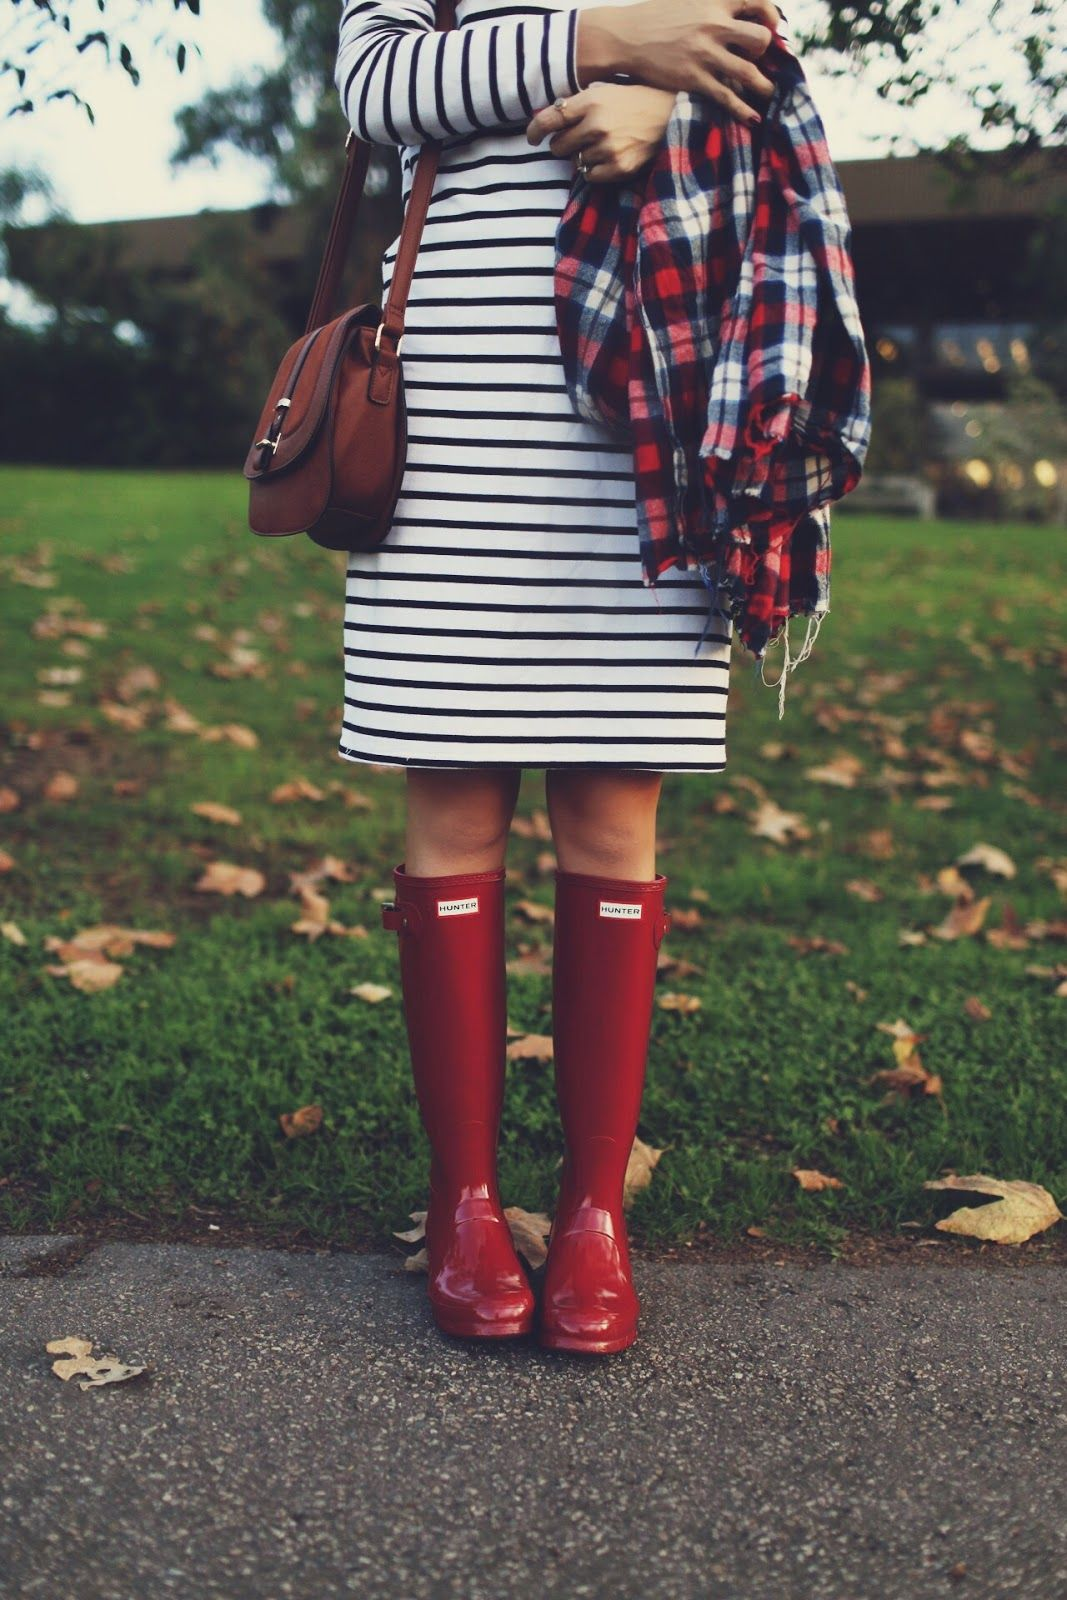 d39f0ae9561 HOW TO WEAR YOUR HUNTER BOOTS WHEN IT'S NOT RAINING | Fabulous ...